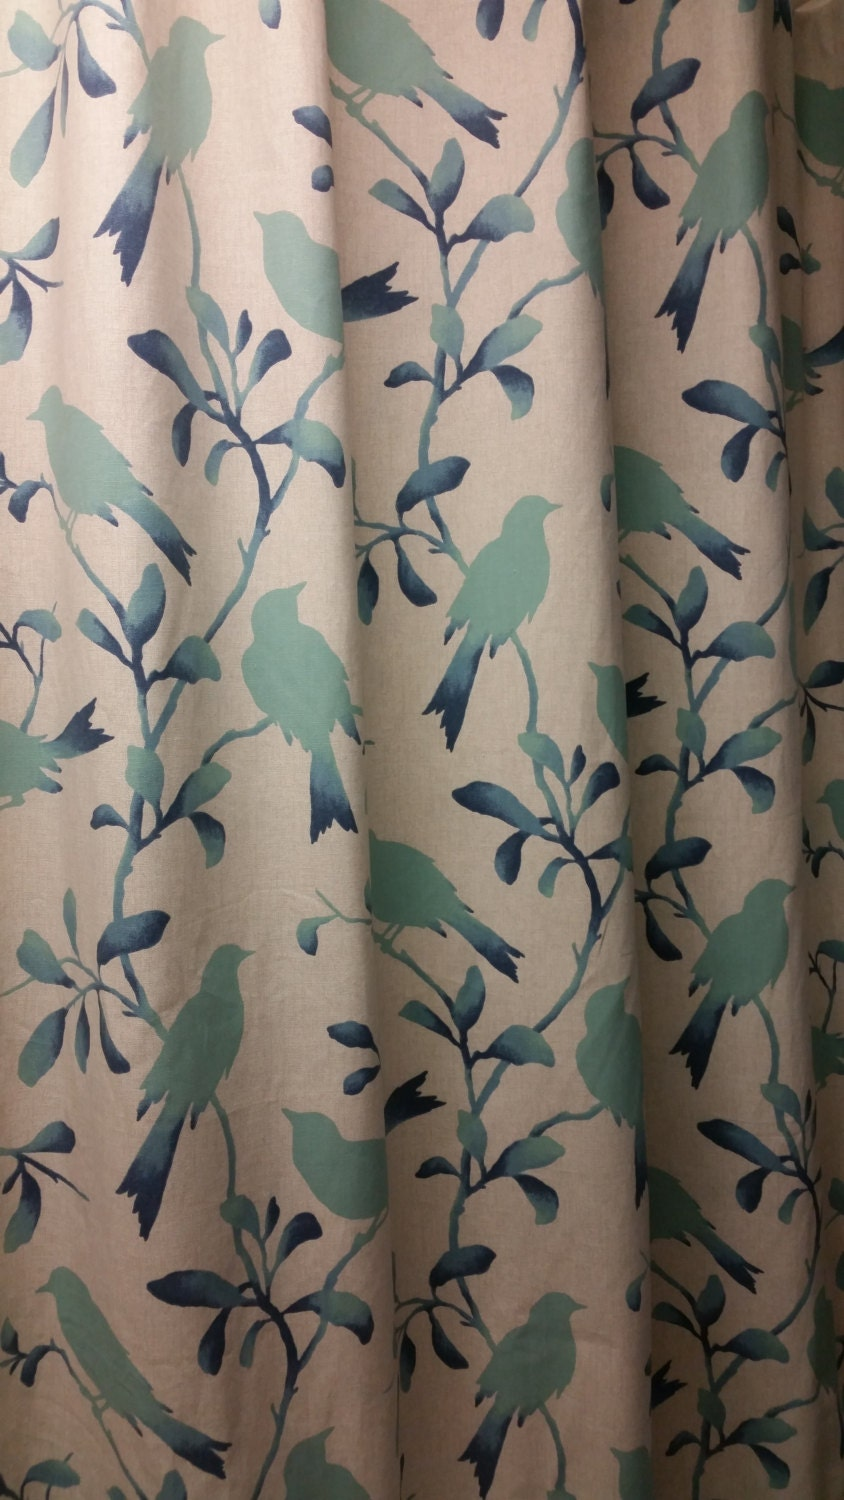 Custom Made Designer Fabric Shower Curtain Or By Kirtamdesigns